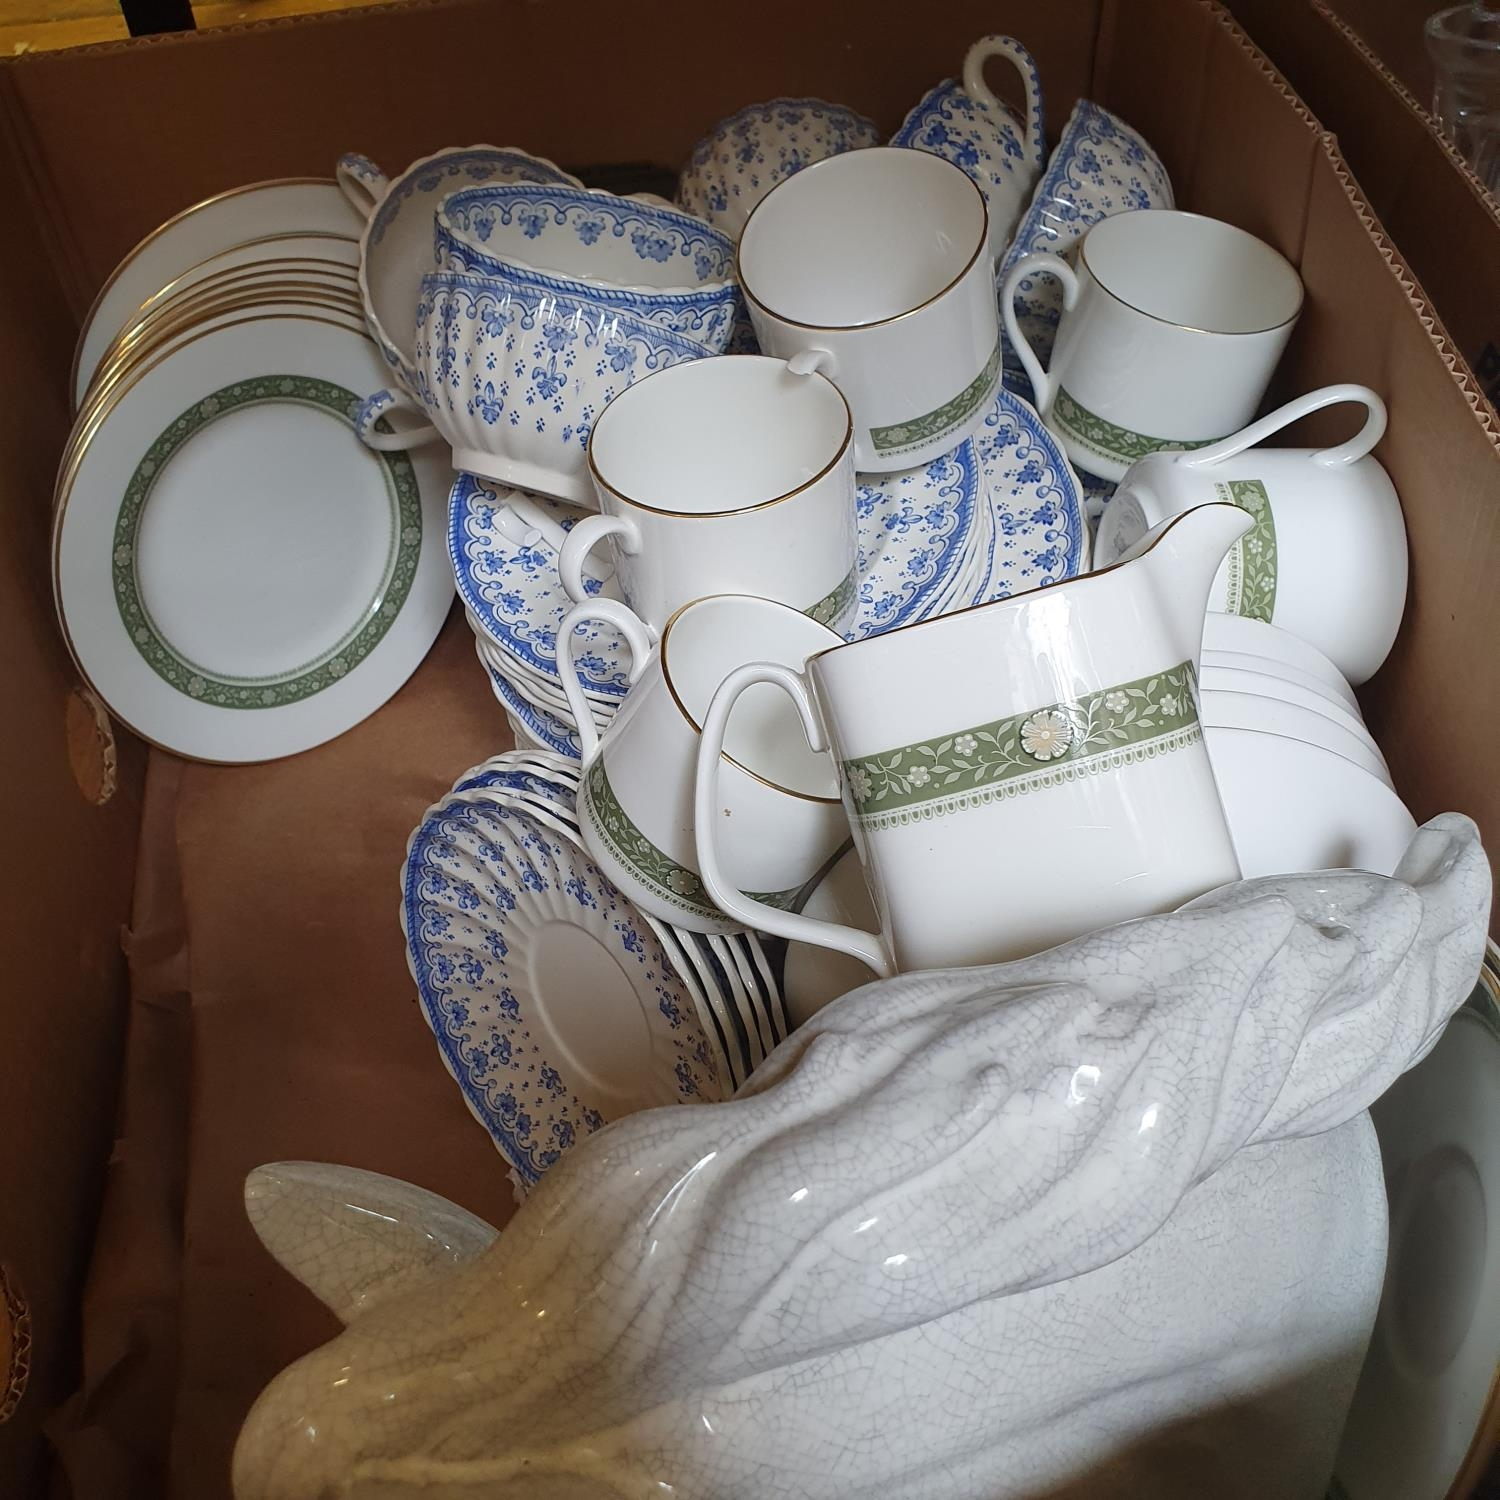 A pair of Staffordshire flat back spaniels, a Royal Doulton part dinner service, other ceramics - Image 6 of 15